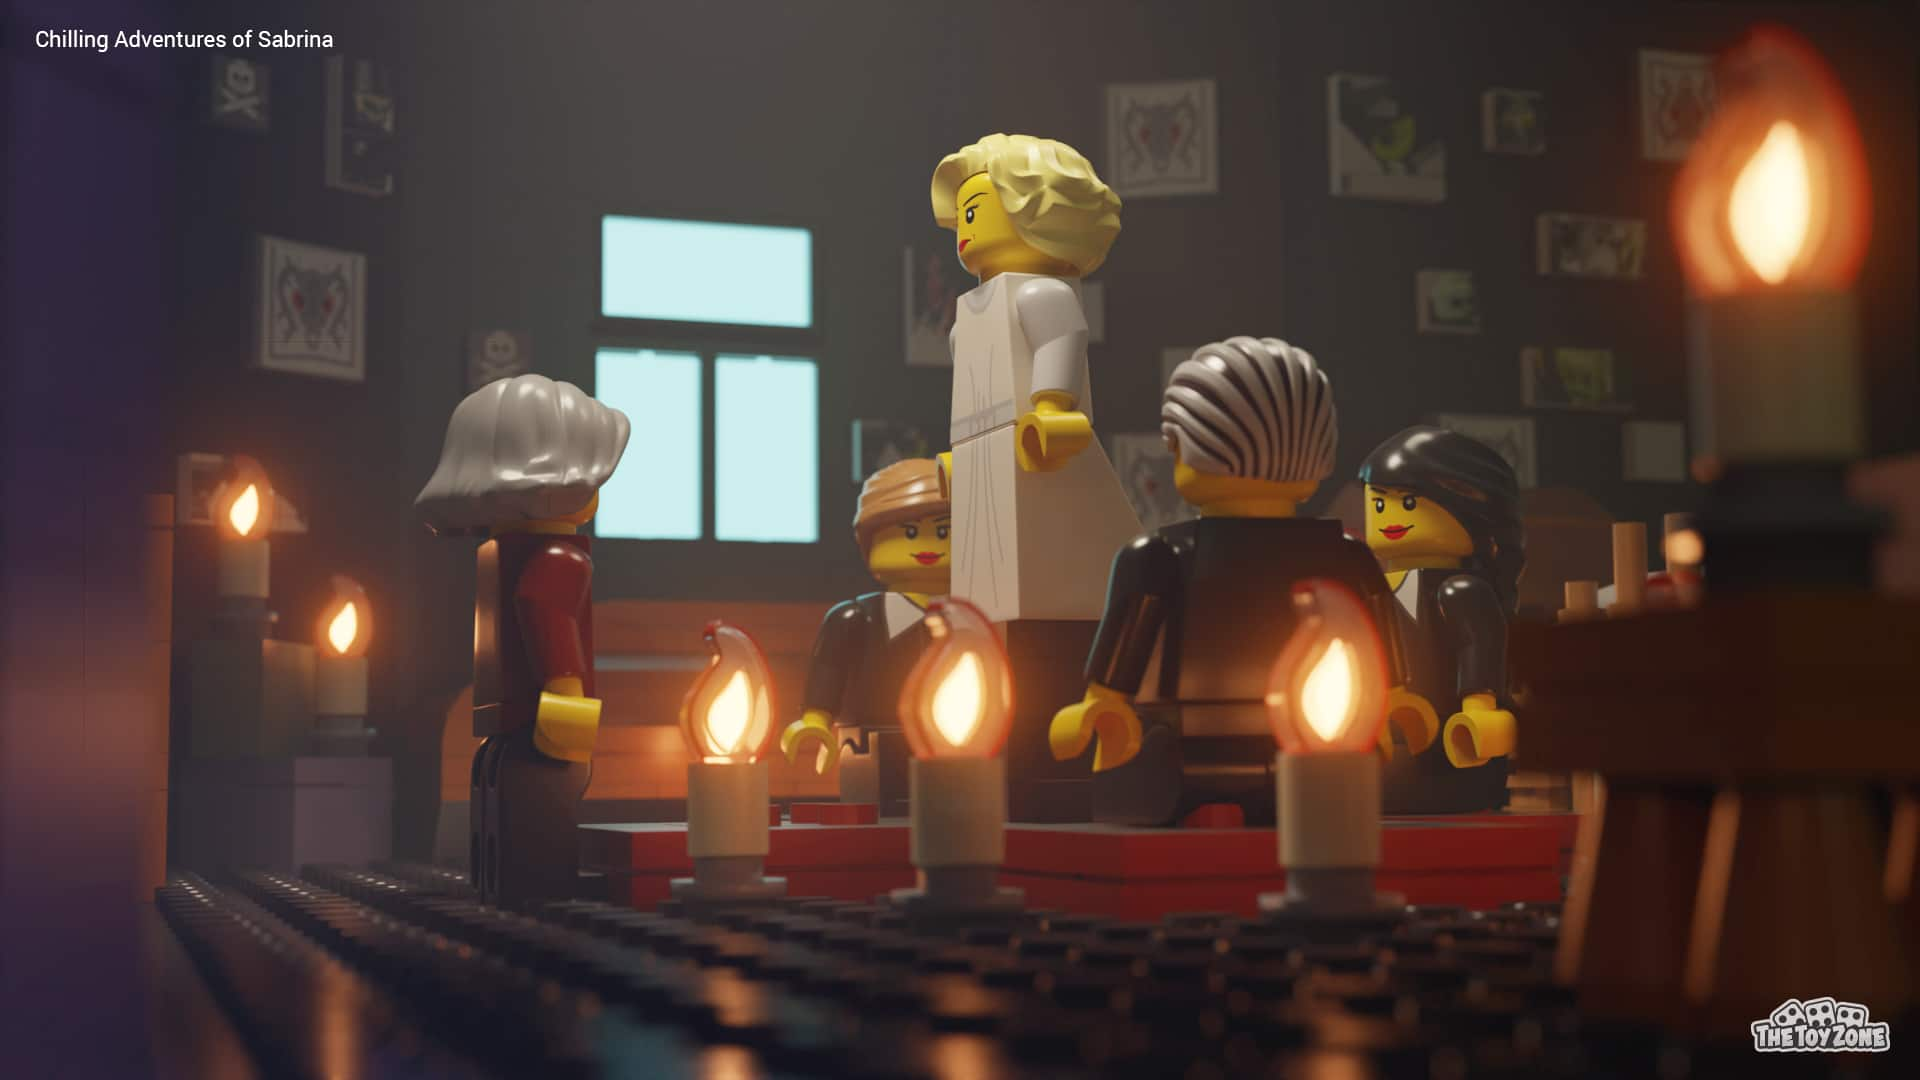 The Crown, Bridgerton, and other Netflix series get recreated in LEGO 24